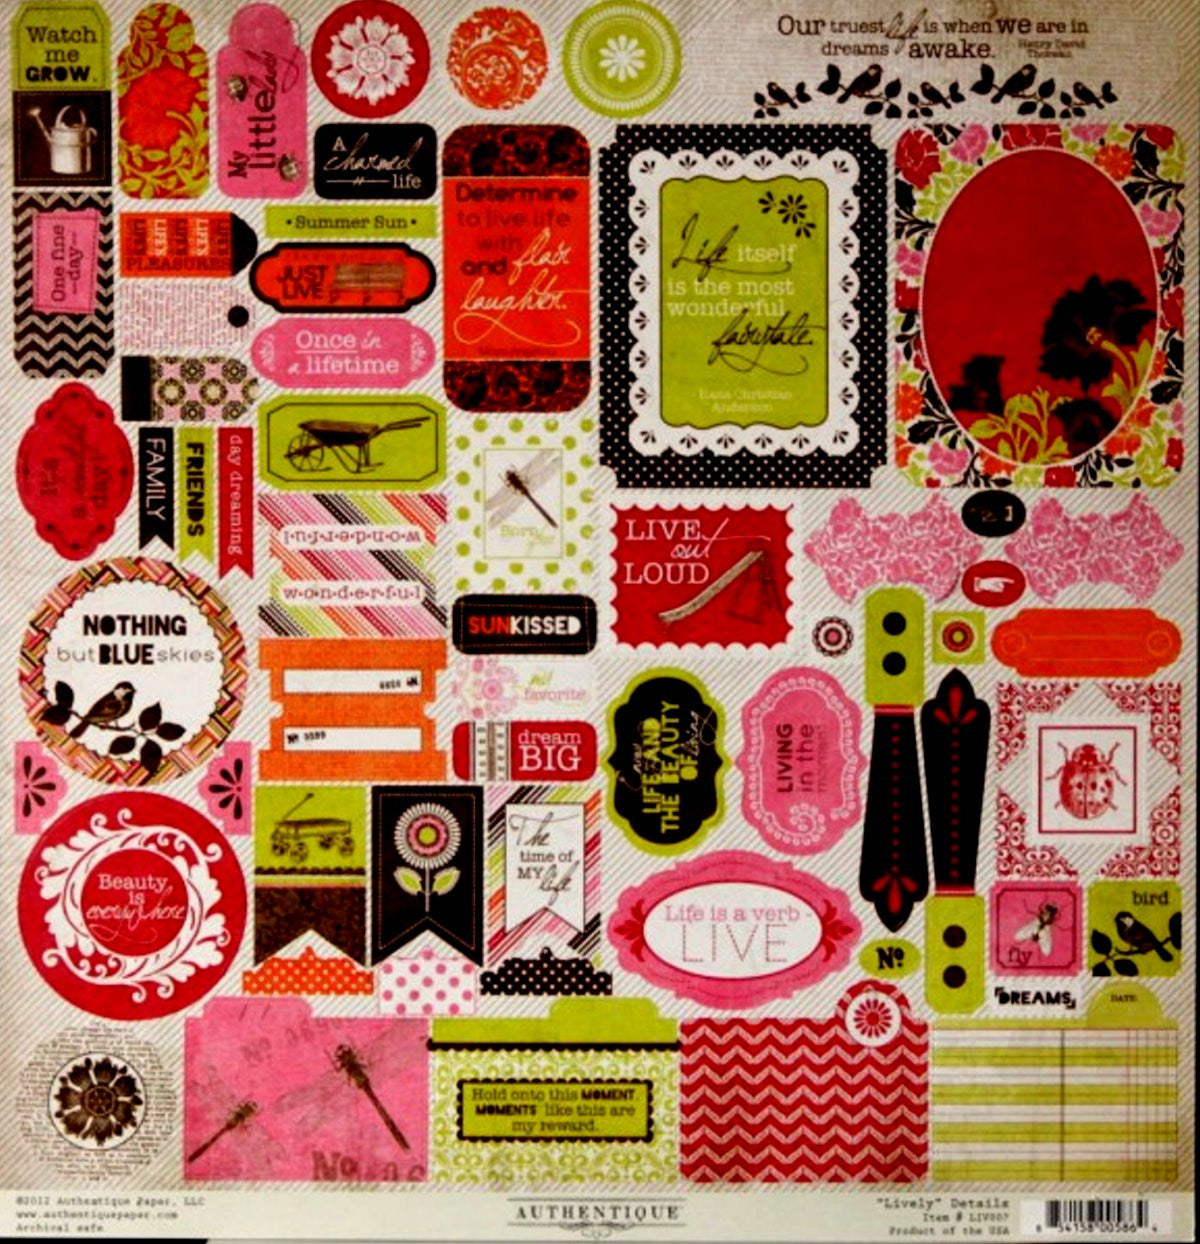 Authentique Lively Details Cardstock Stickers Sheet - SCRAPBOOKFARE